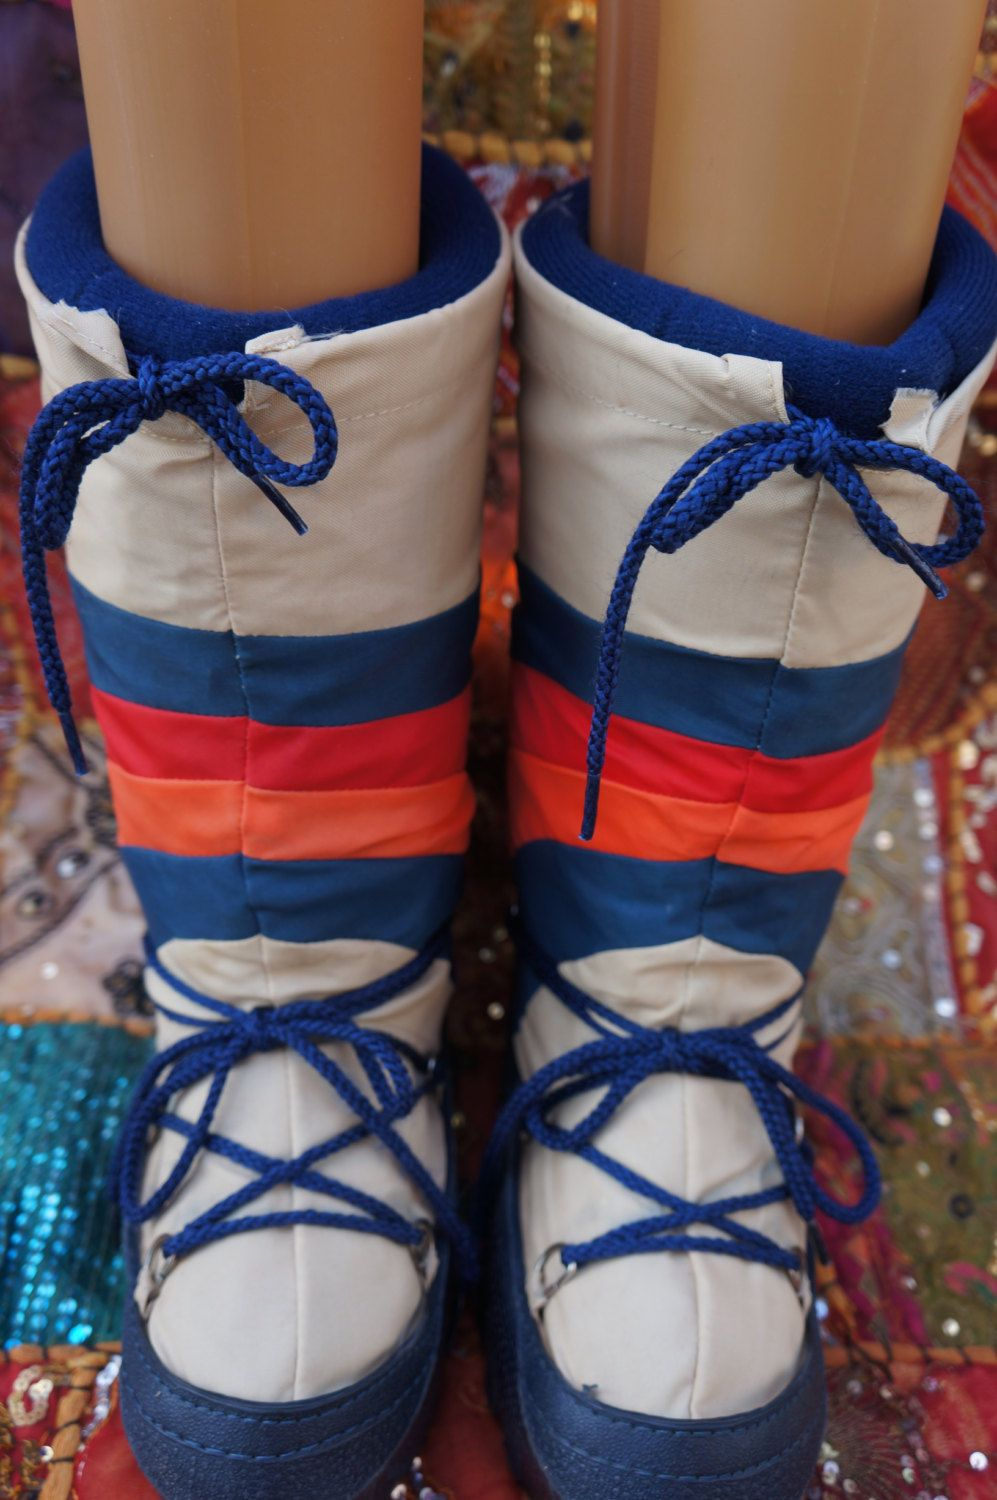 70s Moon Boots 70s Boho Snow Boots Vintage Moon Boot Snow Boots